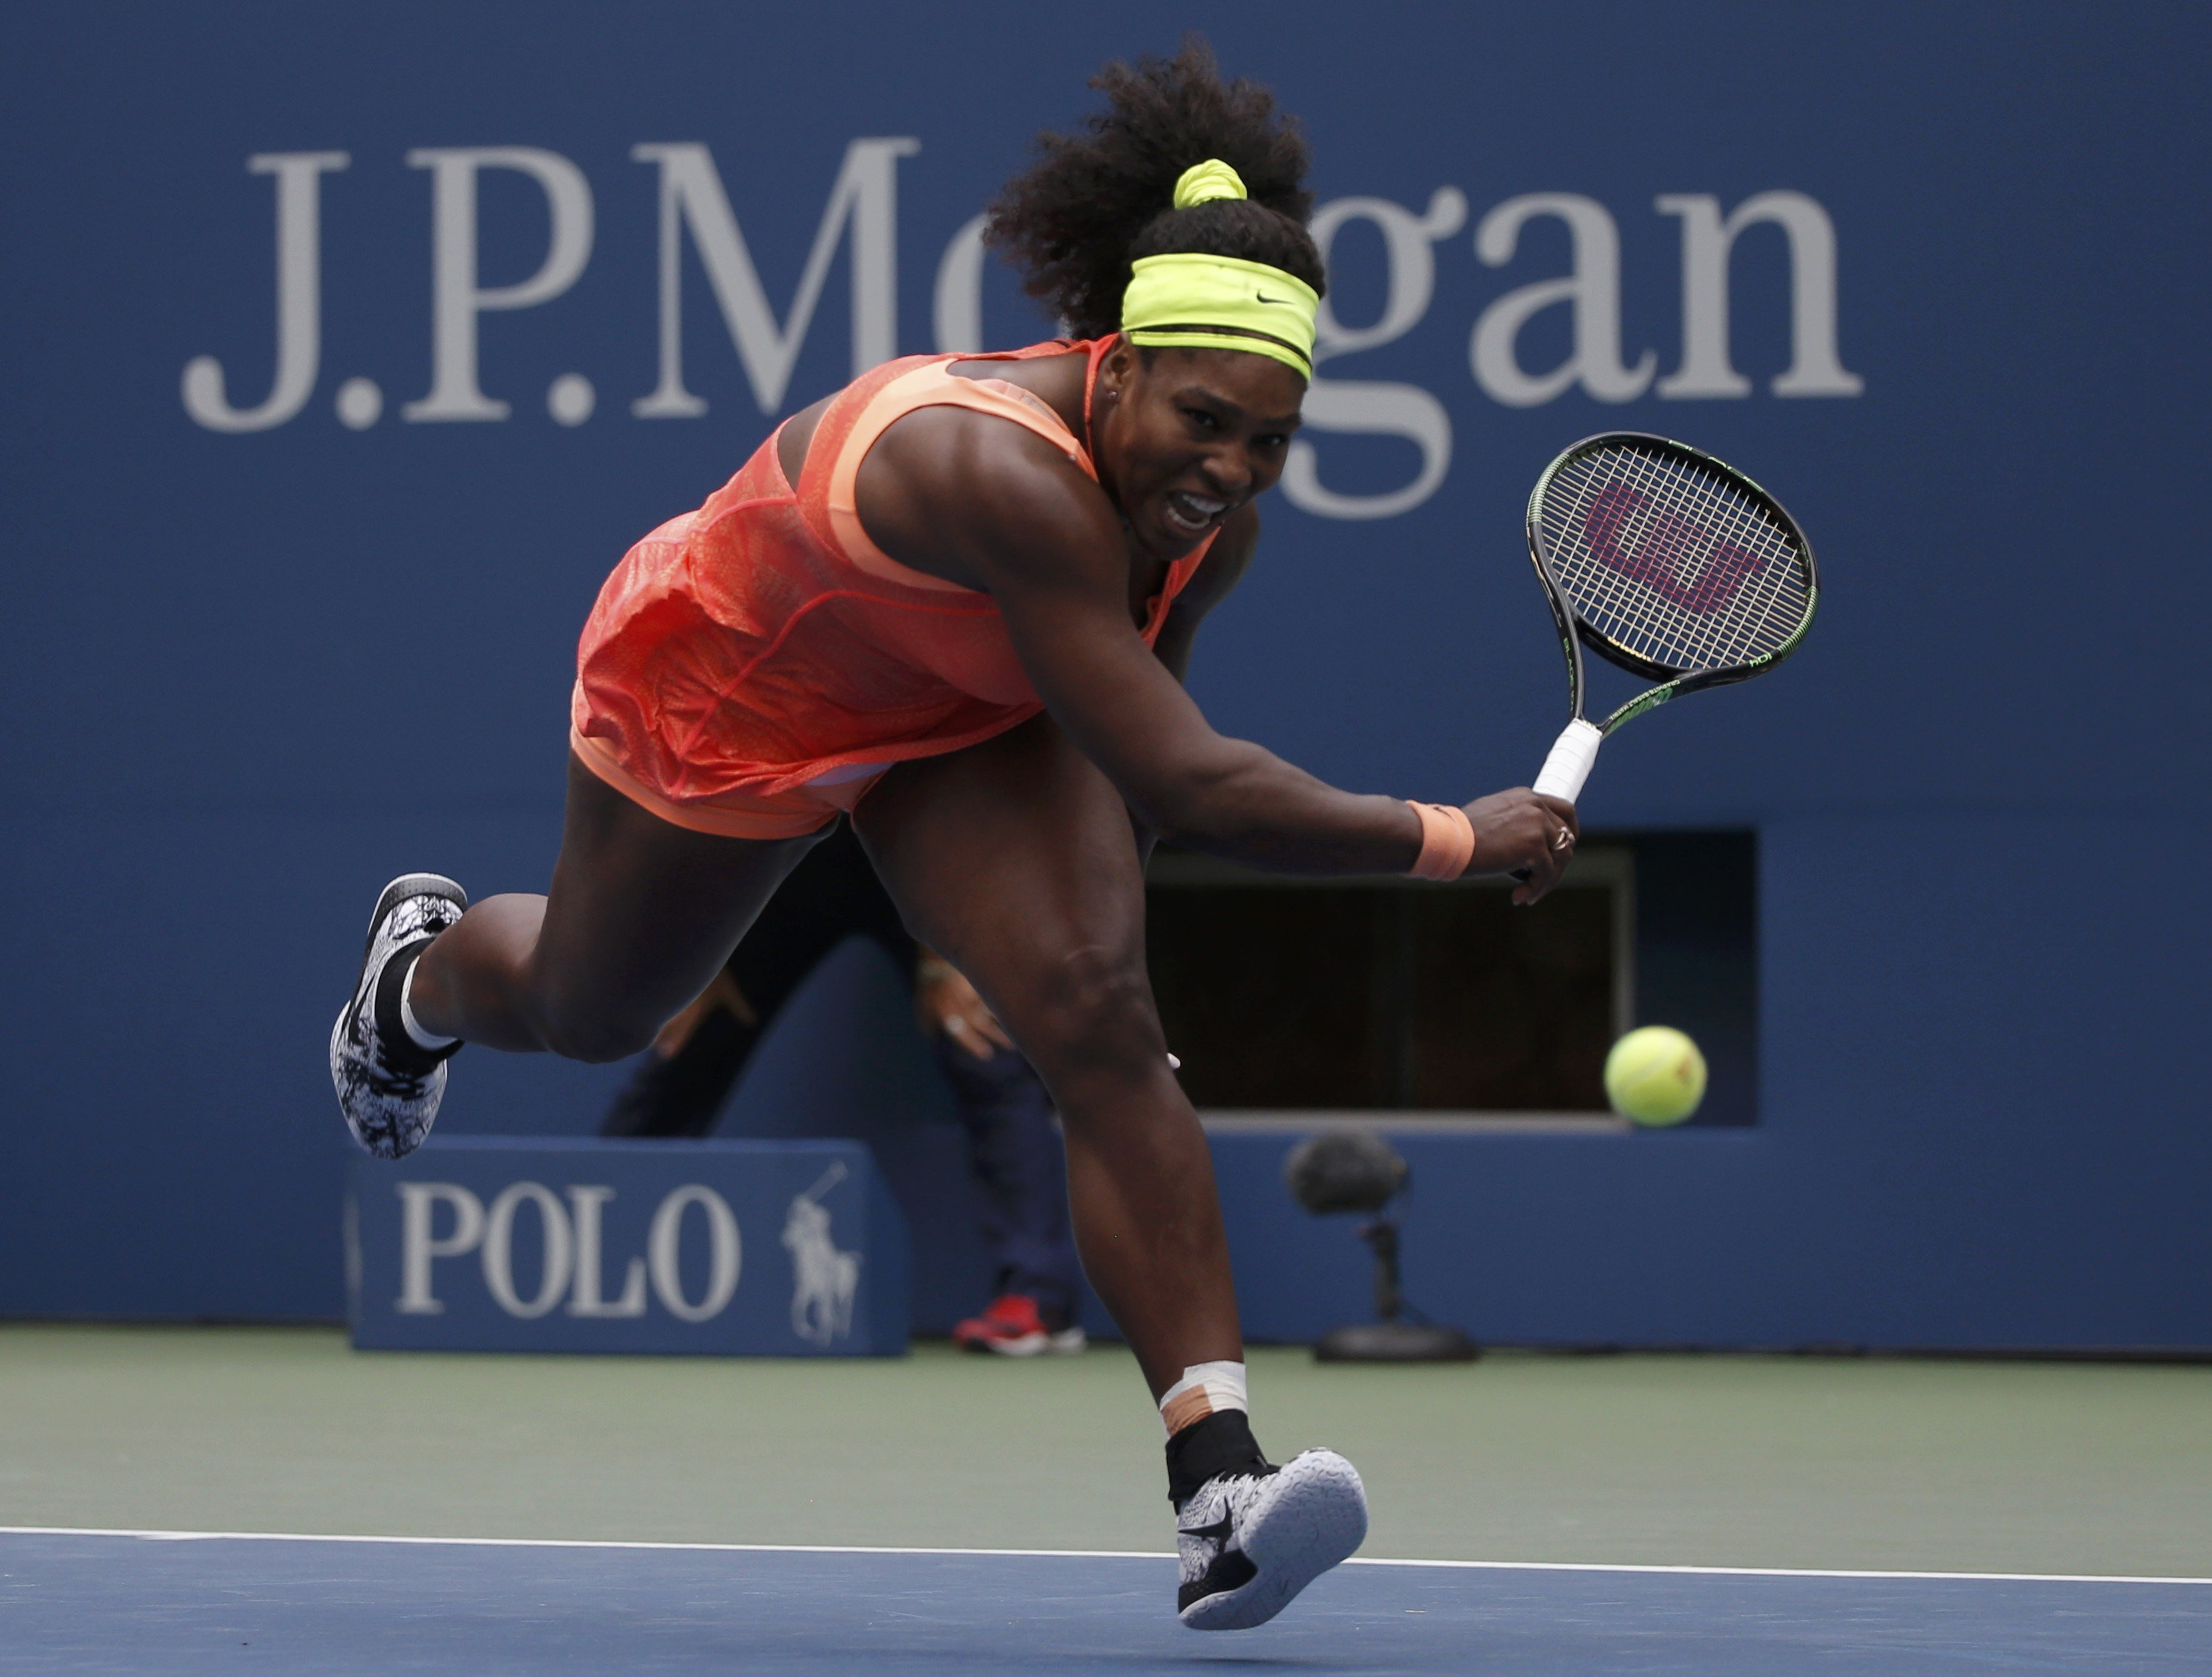 Serena Williams chases down a return from Roberta Vinci of Italy in the third set during their women's singles semi-final match at the U.S. Open Championships tennis tournament on Sept. 11, 2015 in New York City.